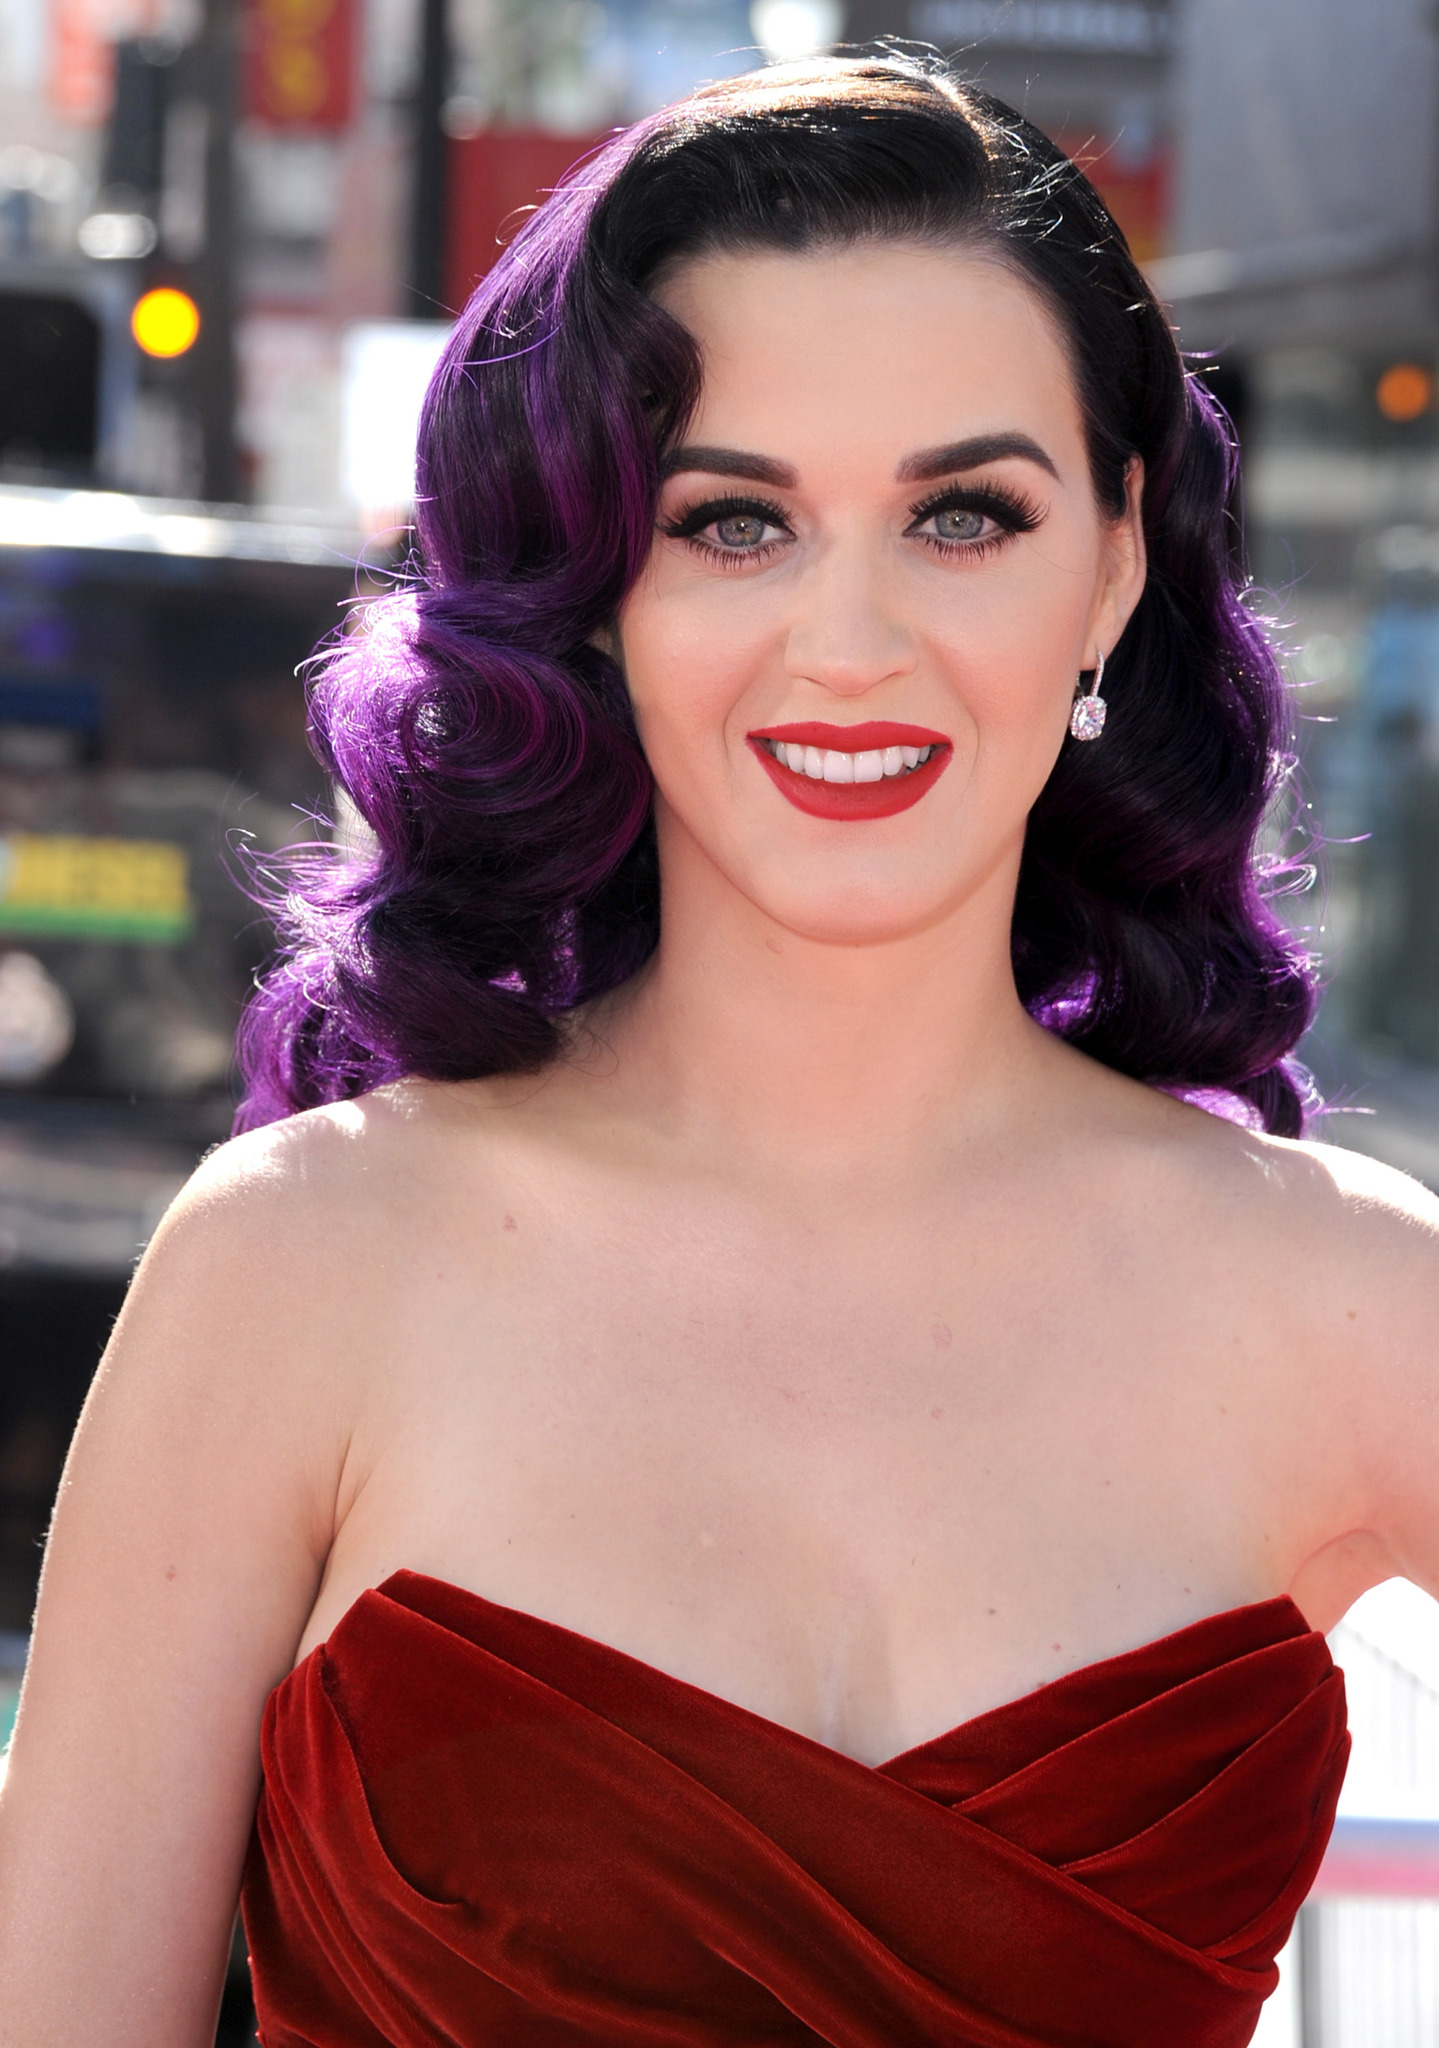 hvem er katy perry dating wdw helt gratis enlige forældre dating sites